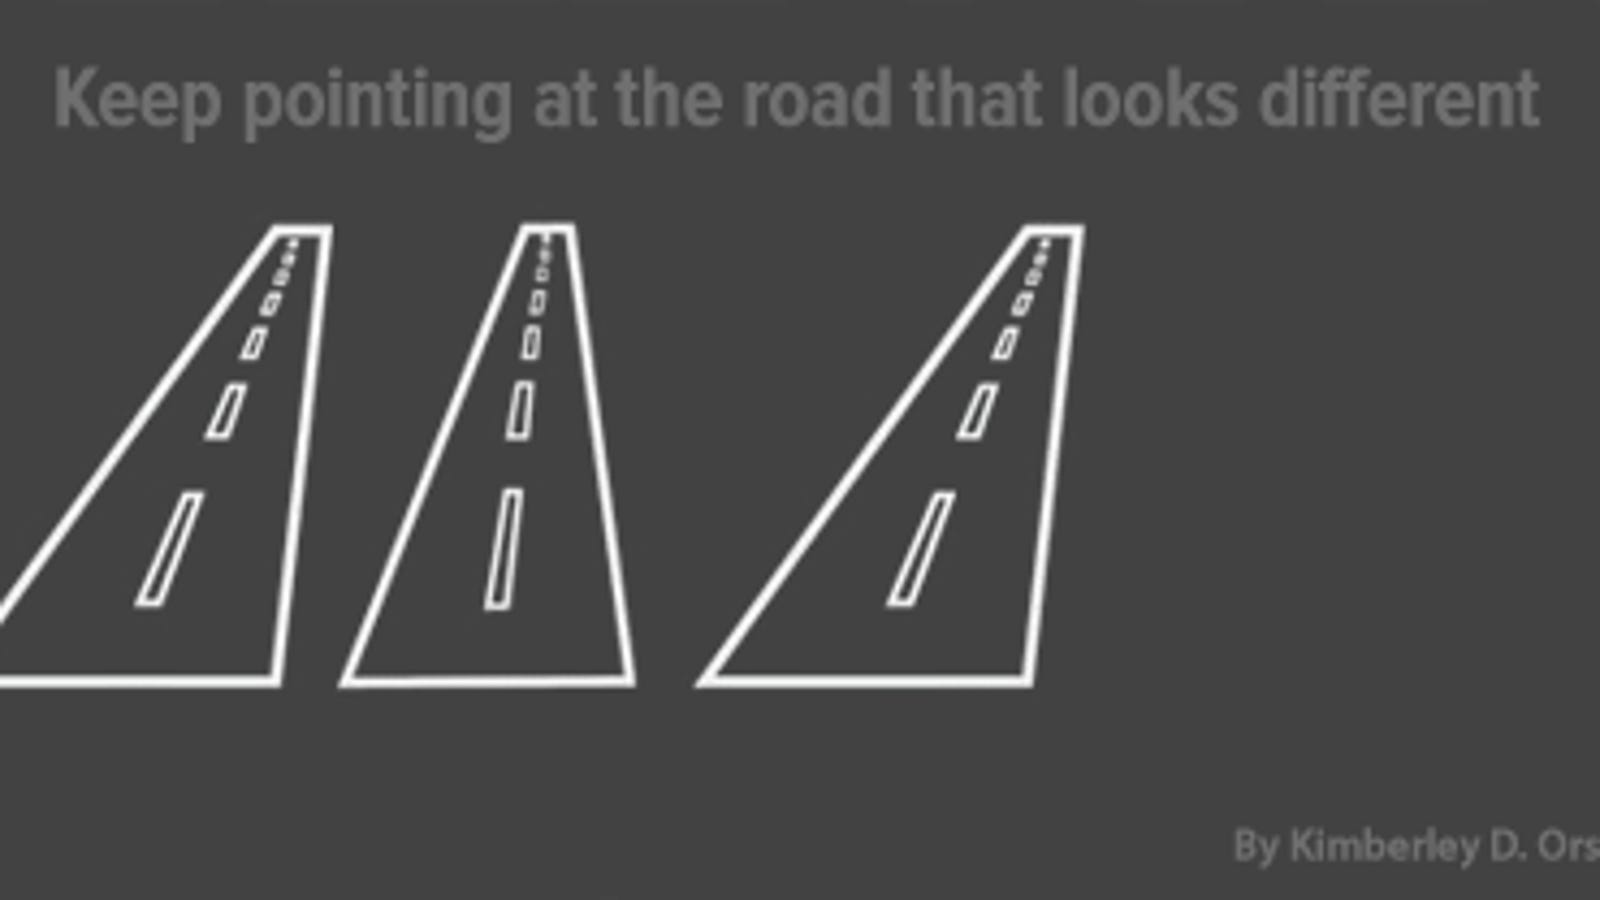 The best optical illusions of 2014 are truly mind-bending stuff